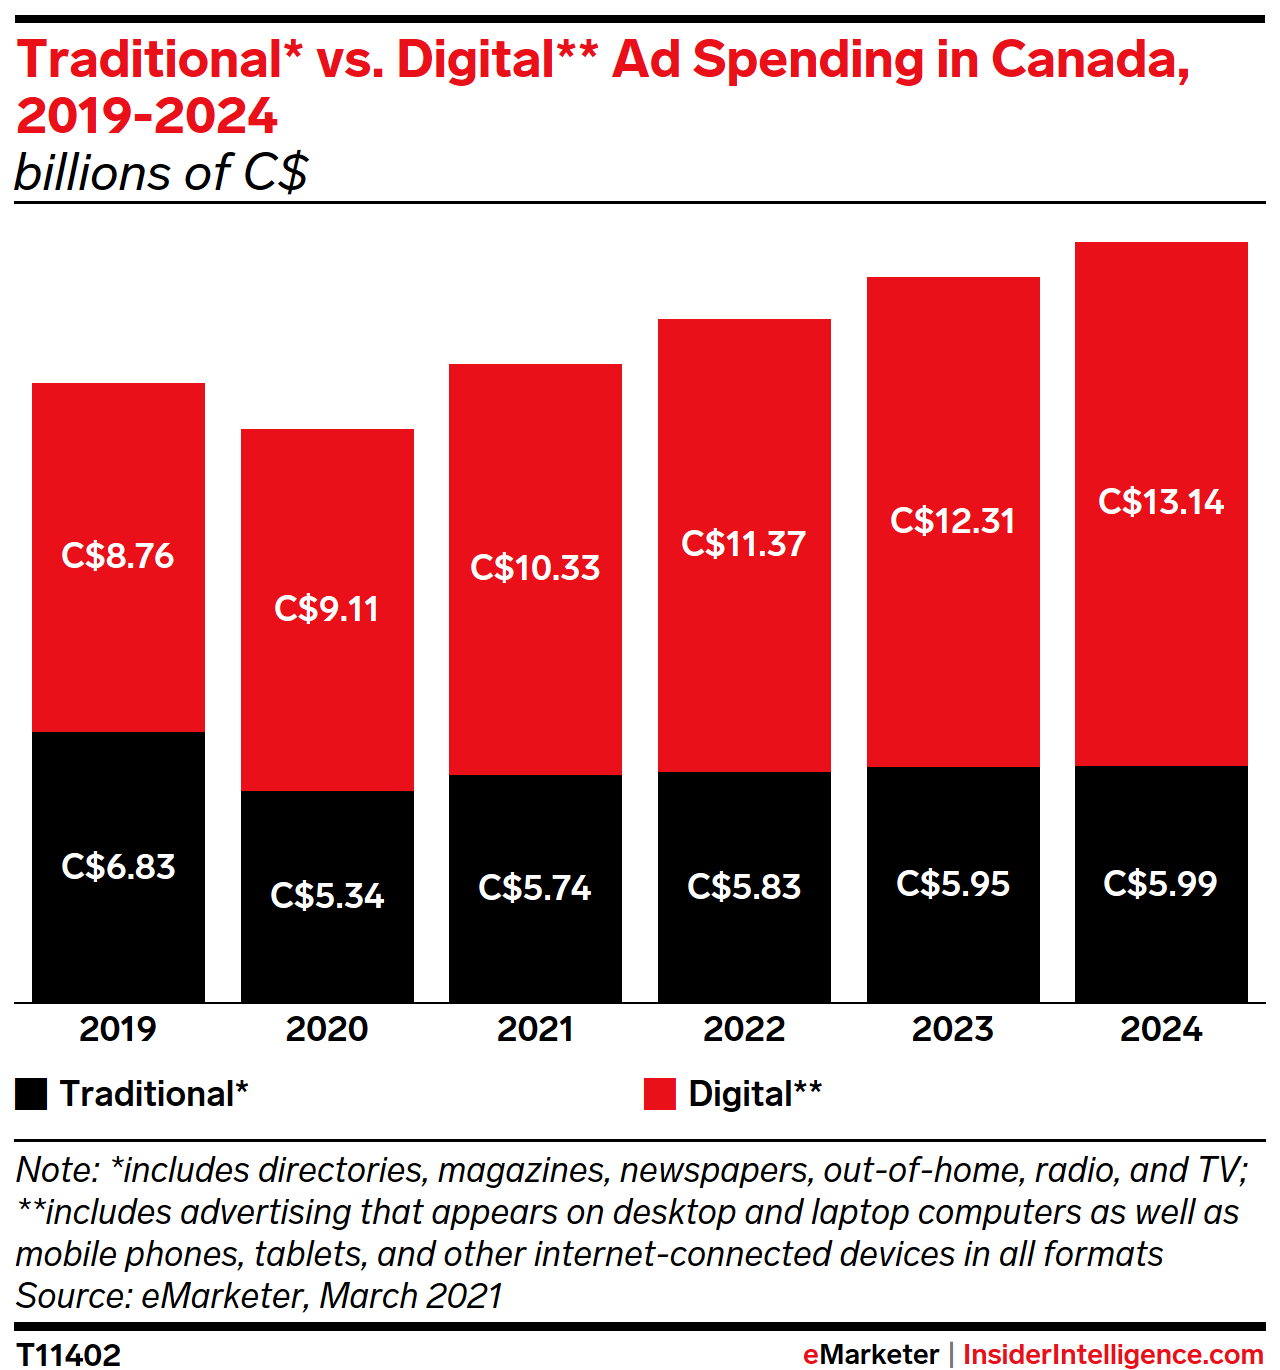 Traditional vs. Digital Ad Spending in Canada, 2019-2024 (billions of C$)